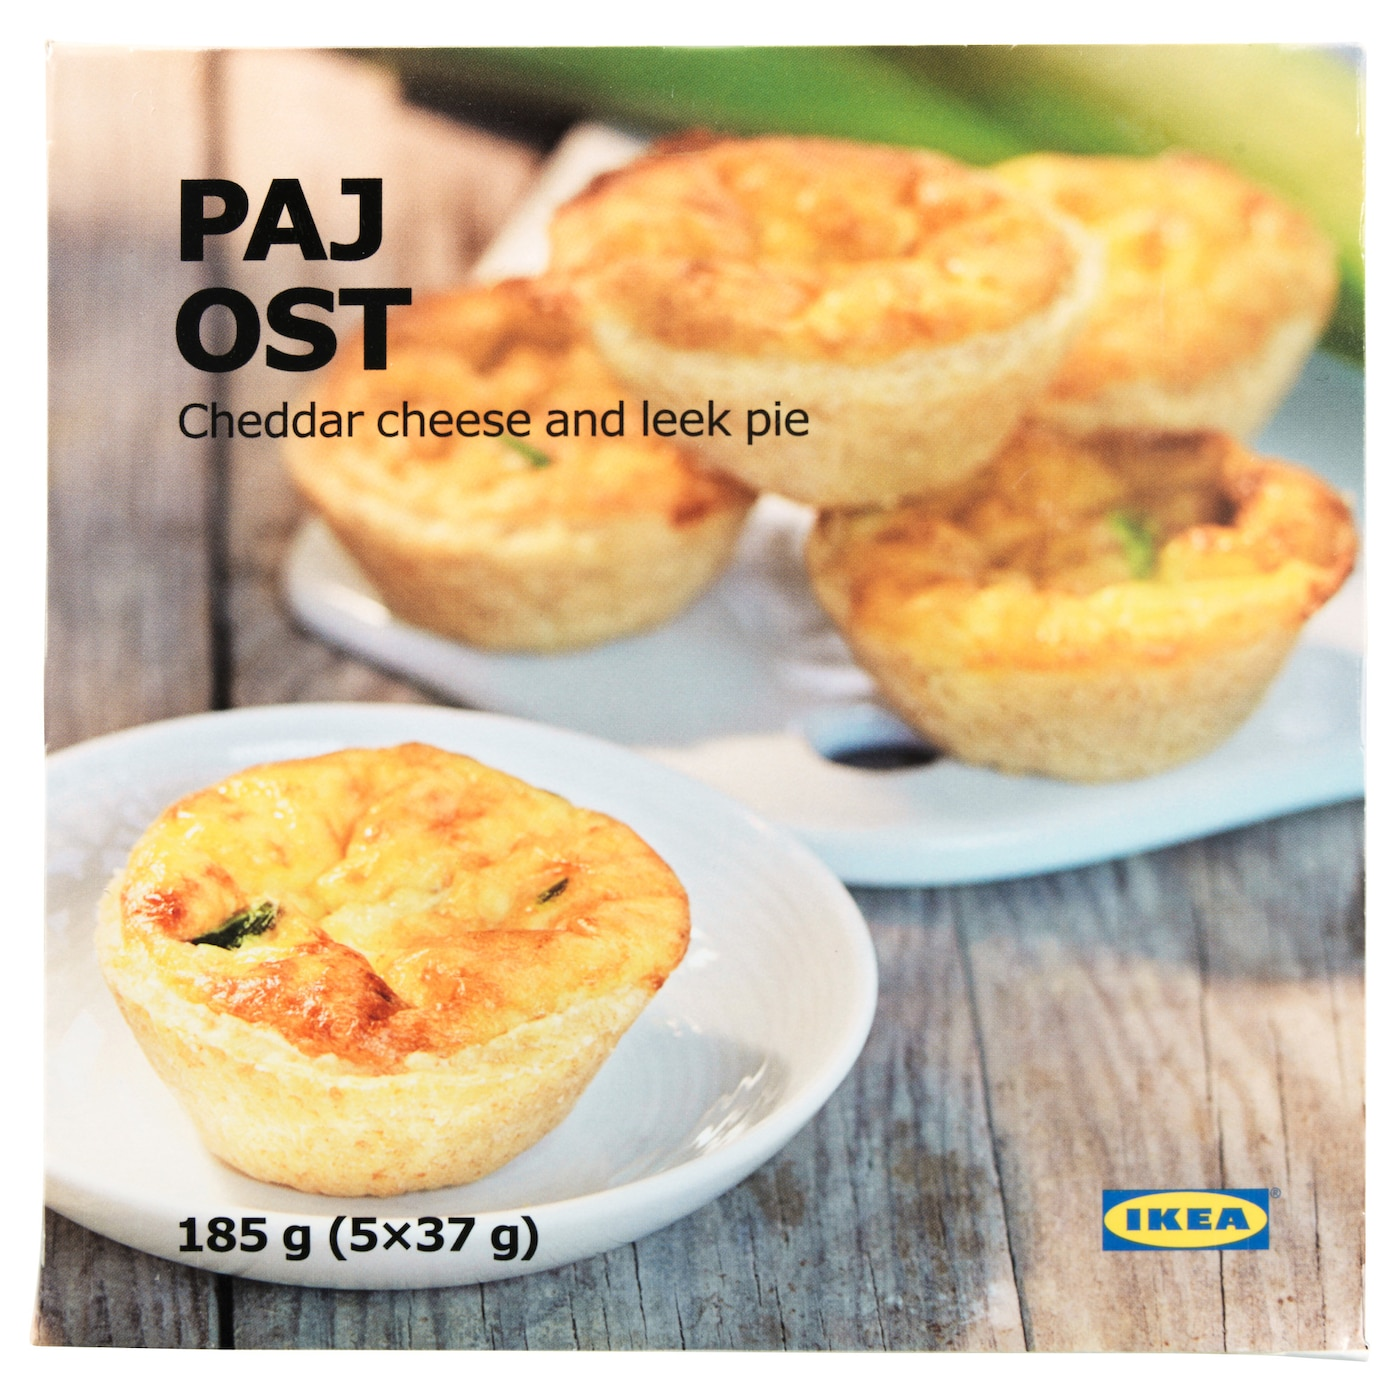 IKEA PAJ OST cheese pie